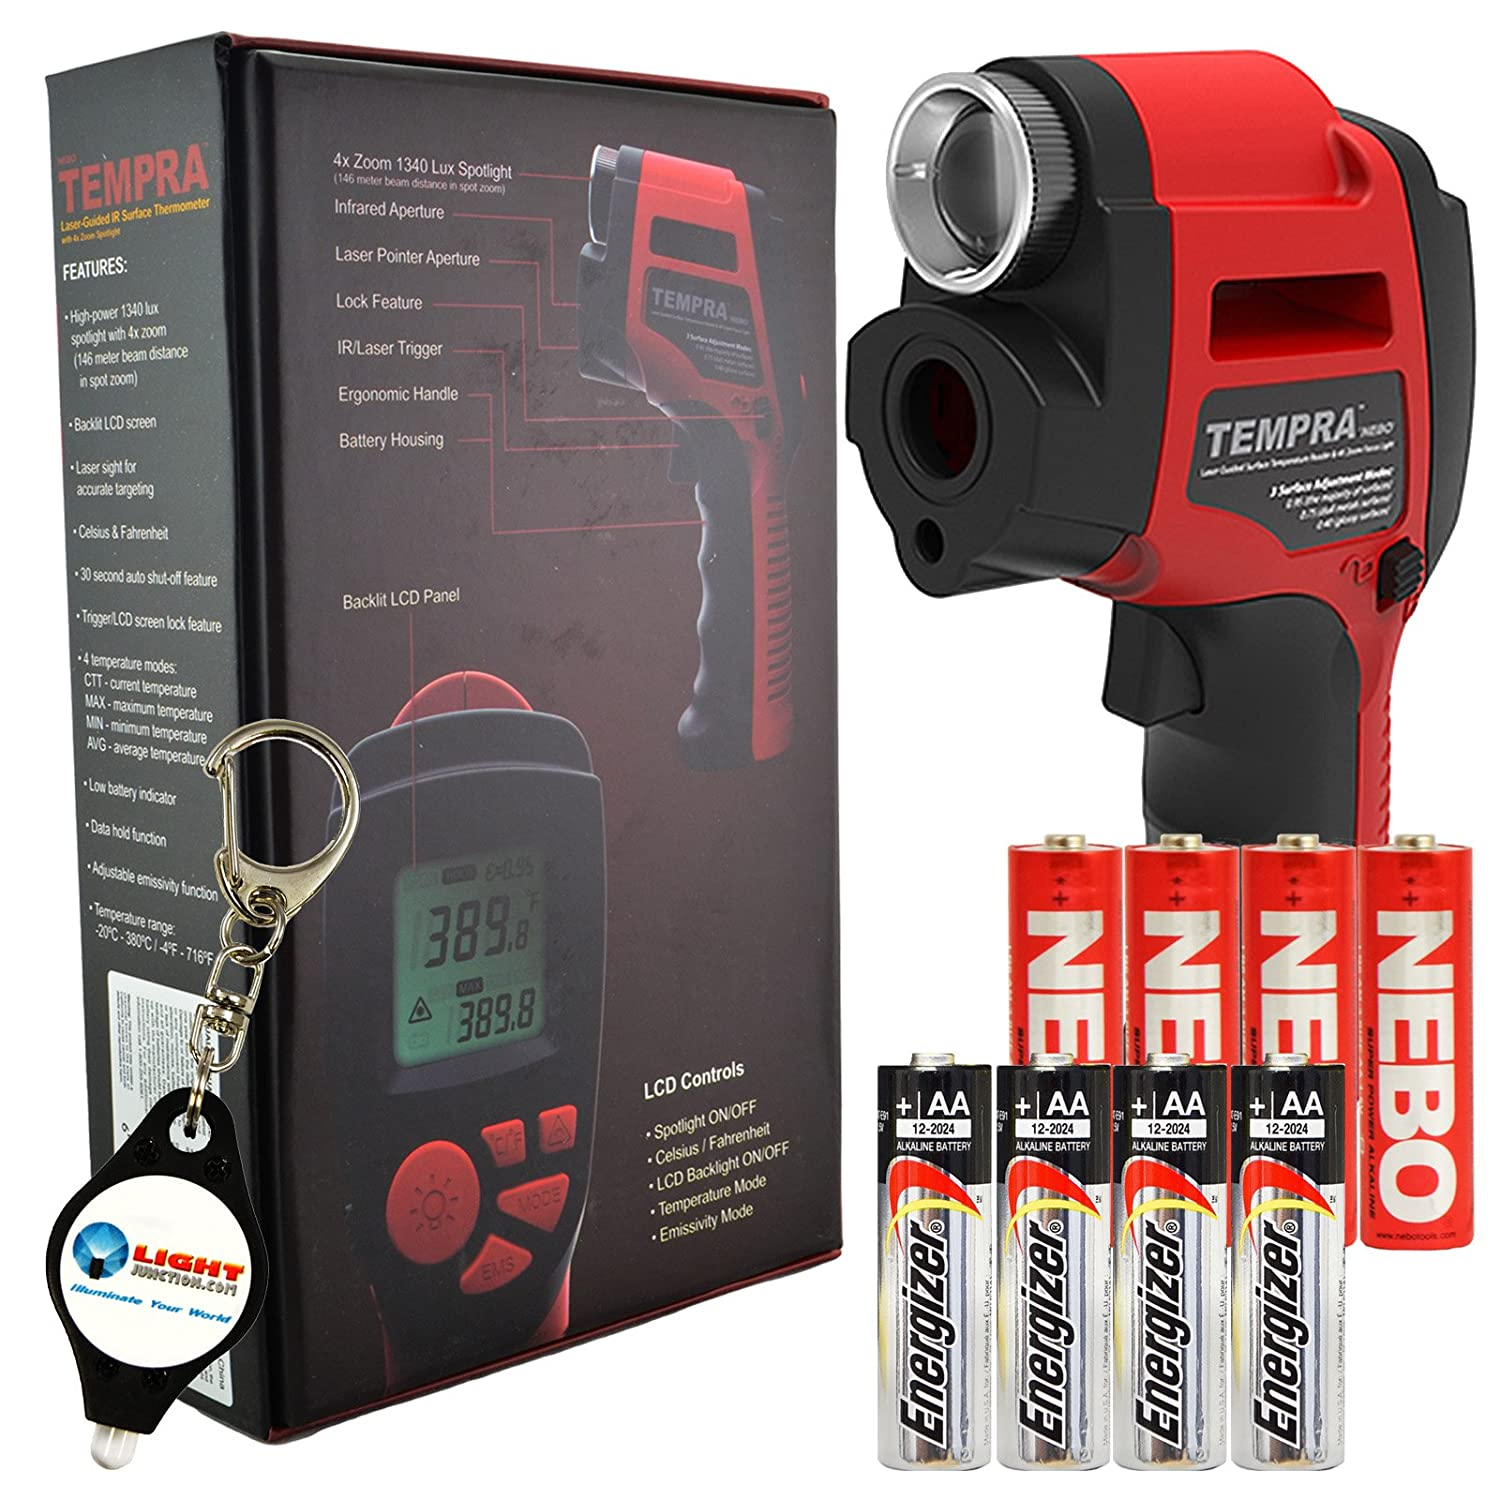 Nebo Tempra 6433 Laser IR Thermometer Zoomable Spotlight with 4 Extra AA Batteries and LightJunction Keychain Light